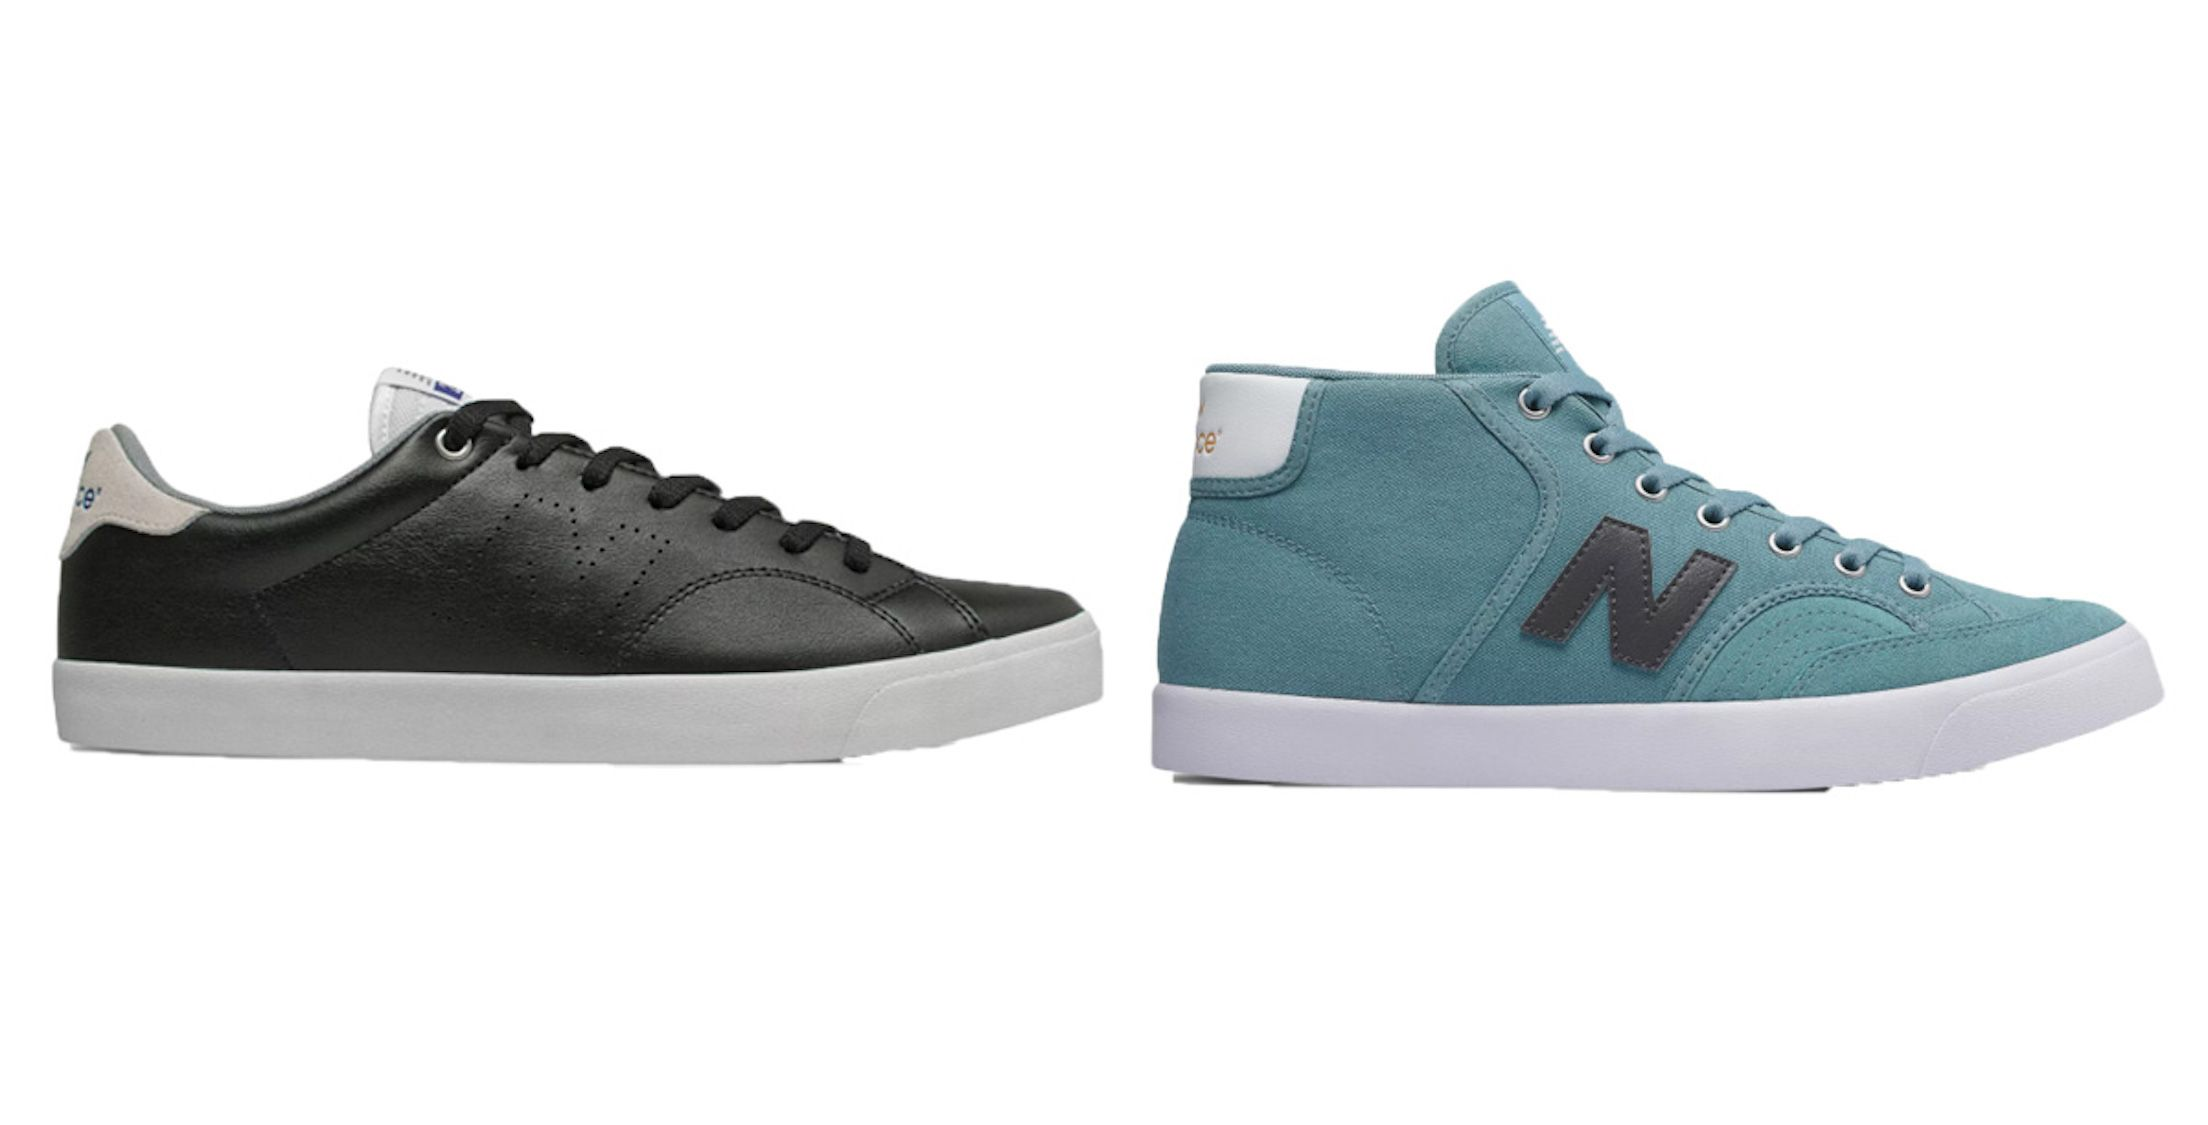 The sneakers you need for every occasion